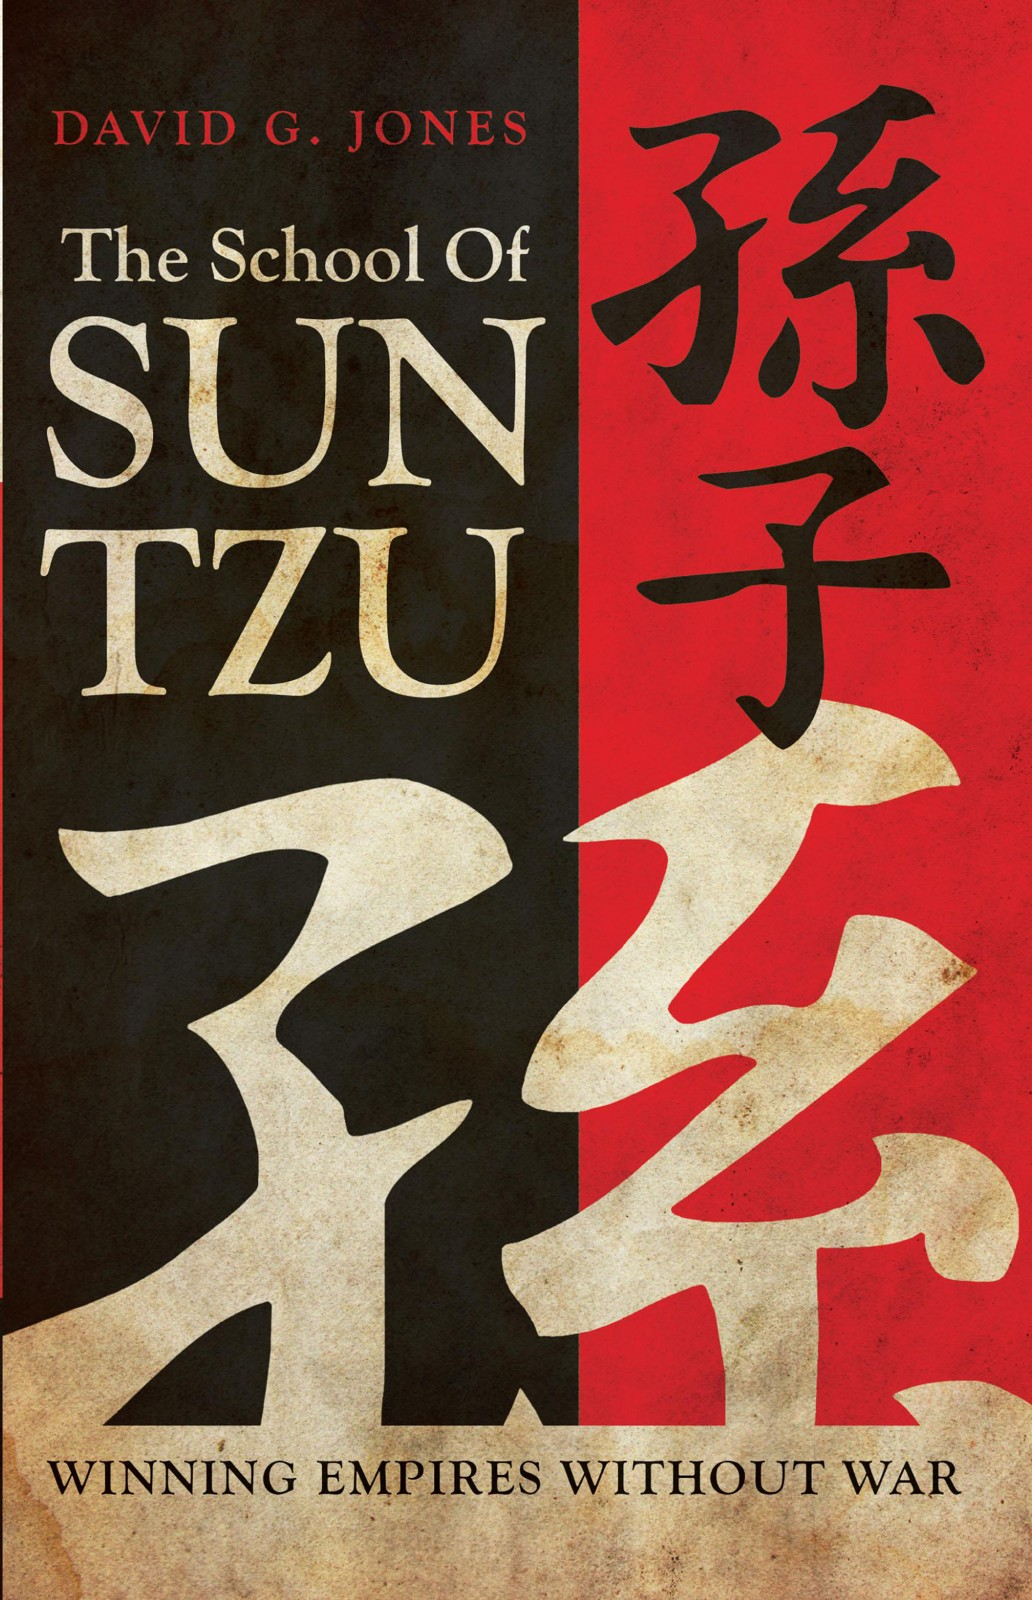 The School of Sun Tzu